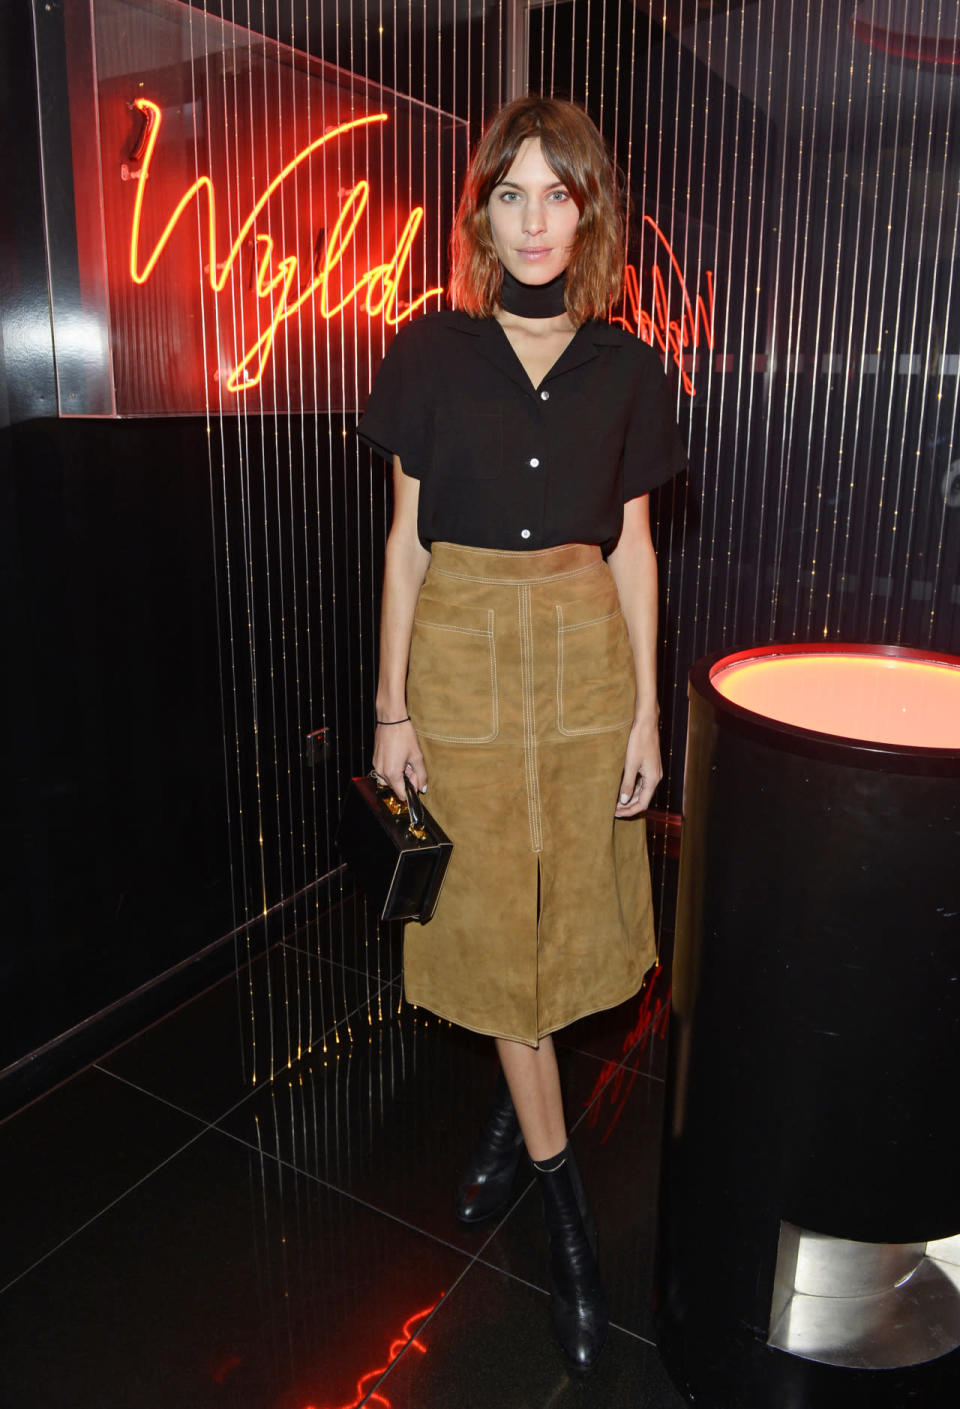 <p>The street style icon was seen earlier this year looking simply divine in a high-waisted suede skirt while attending an event in Beijing, China.</p>